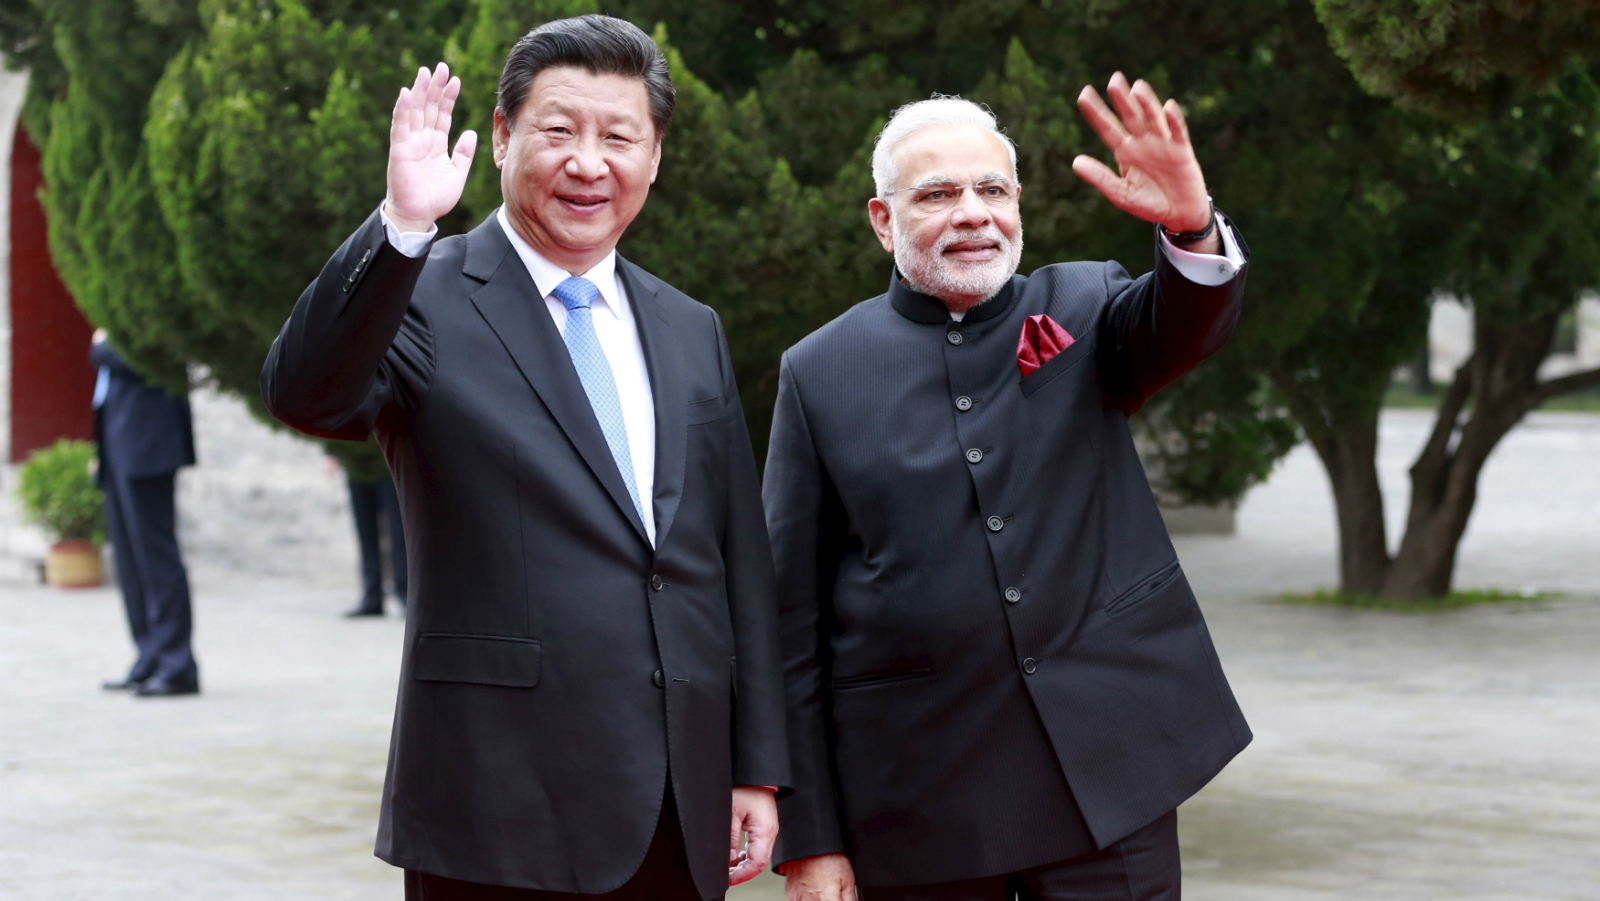 Chinese President Xi Jinping (L) and Indian Prime Minister Narendra Modi wave as they visit Dacien Buddhist Temple in Xian, Shaanxi province, China, May 14, 2015.